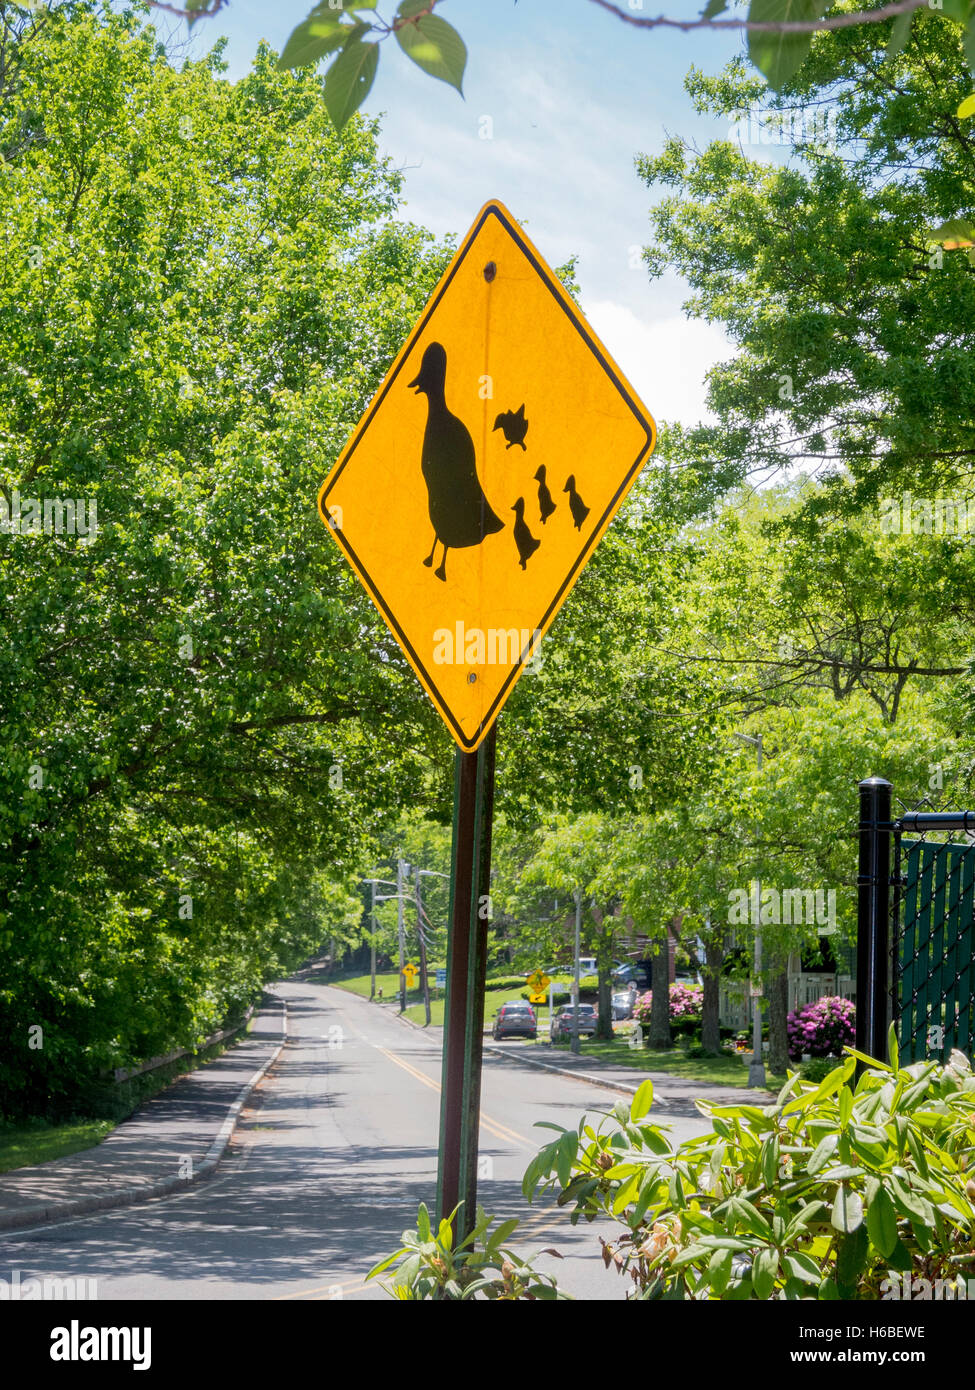 A yellow traffic sign warns motorists about ducks crossing a street in Wellesley, MA. - Stock Image